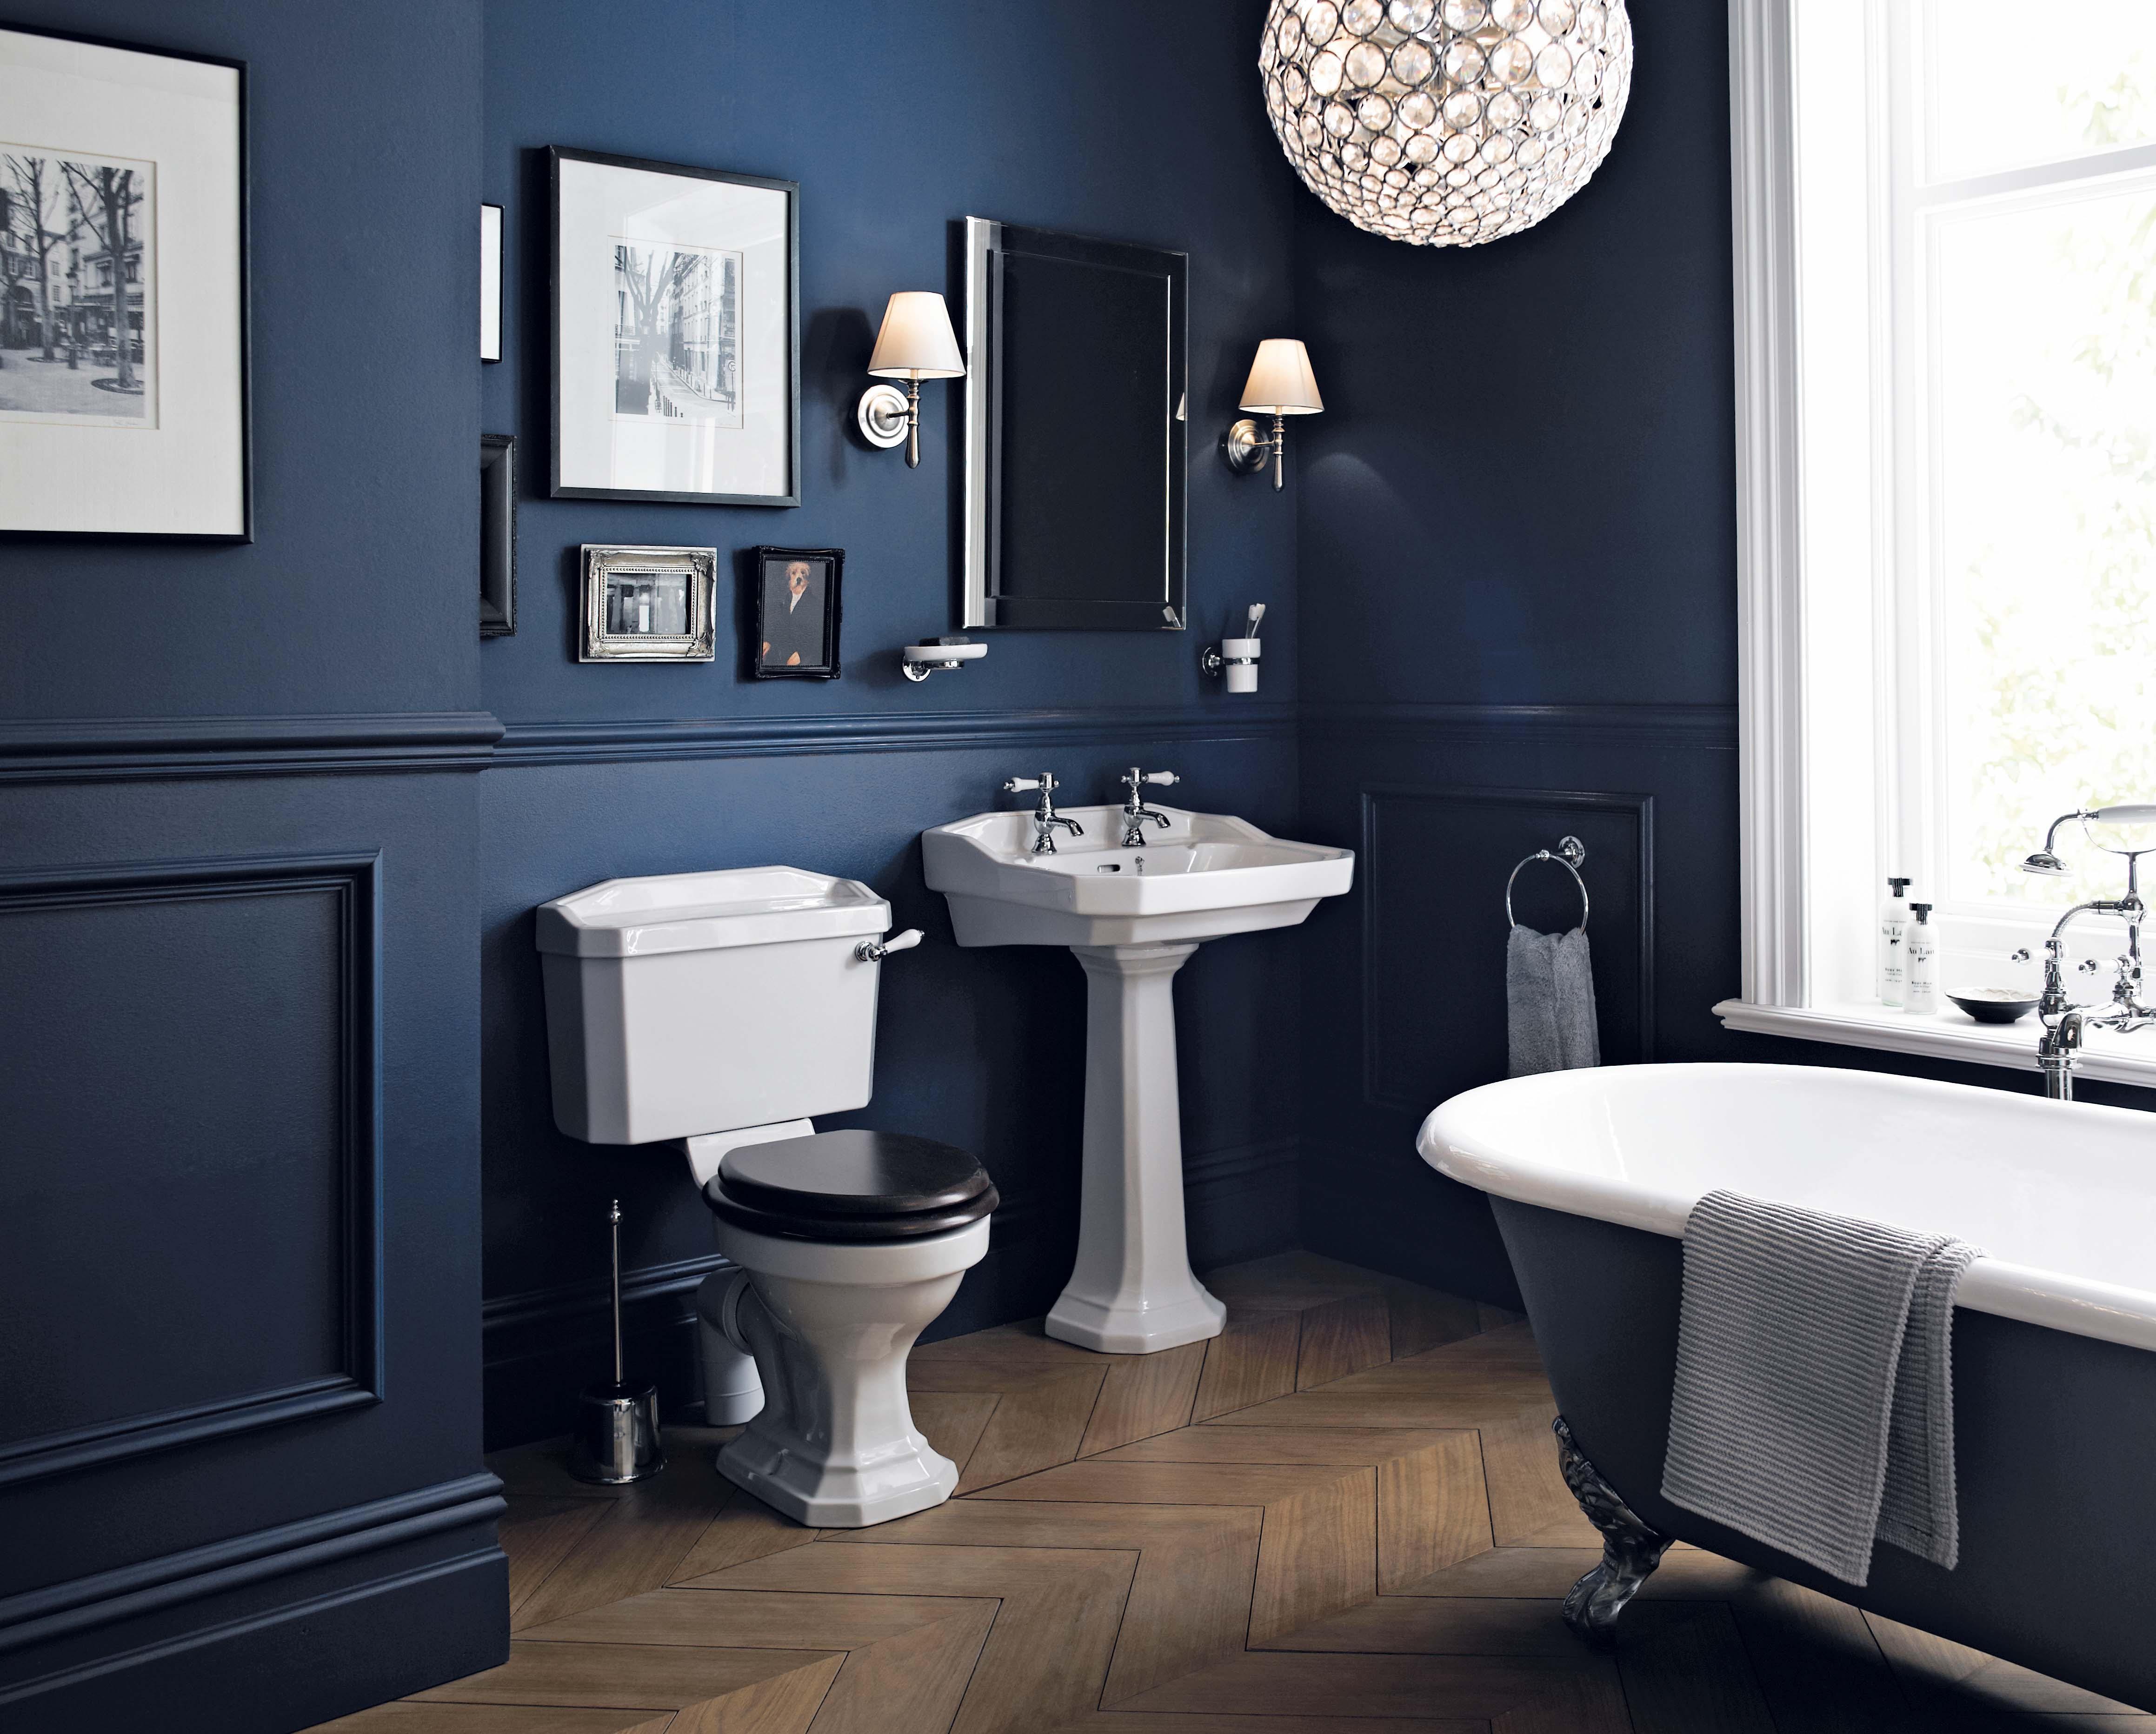 Design inspiration with heritage bathrooms mkm news advice for Bathroom remodel inspiration